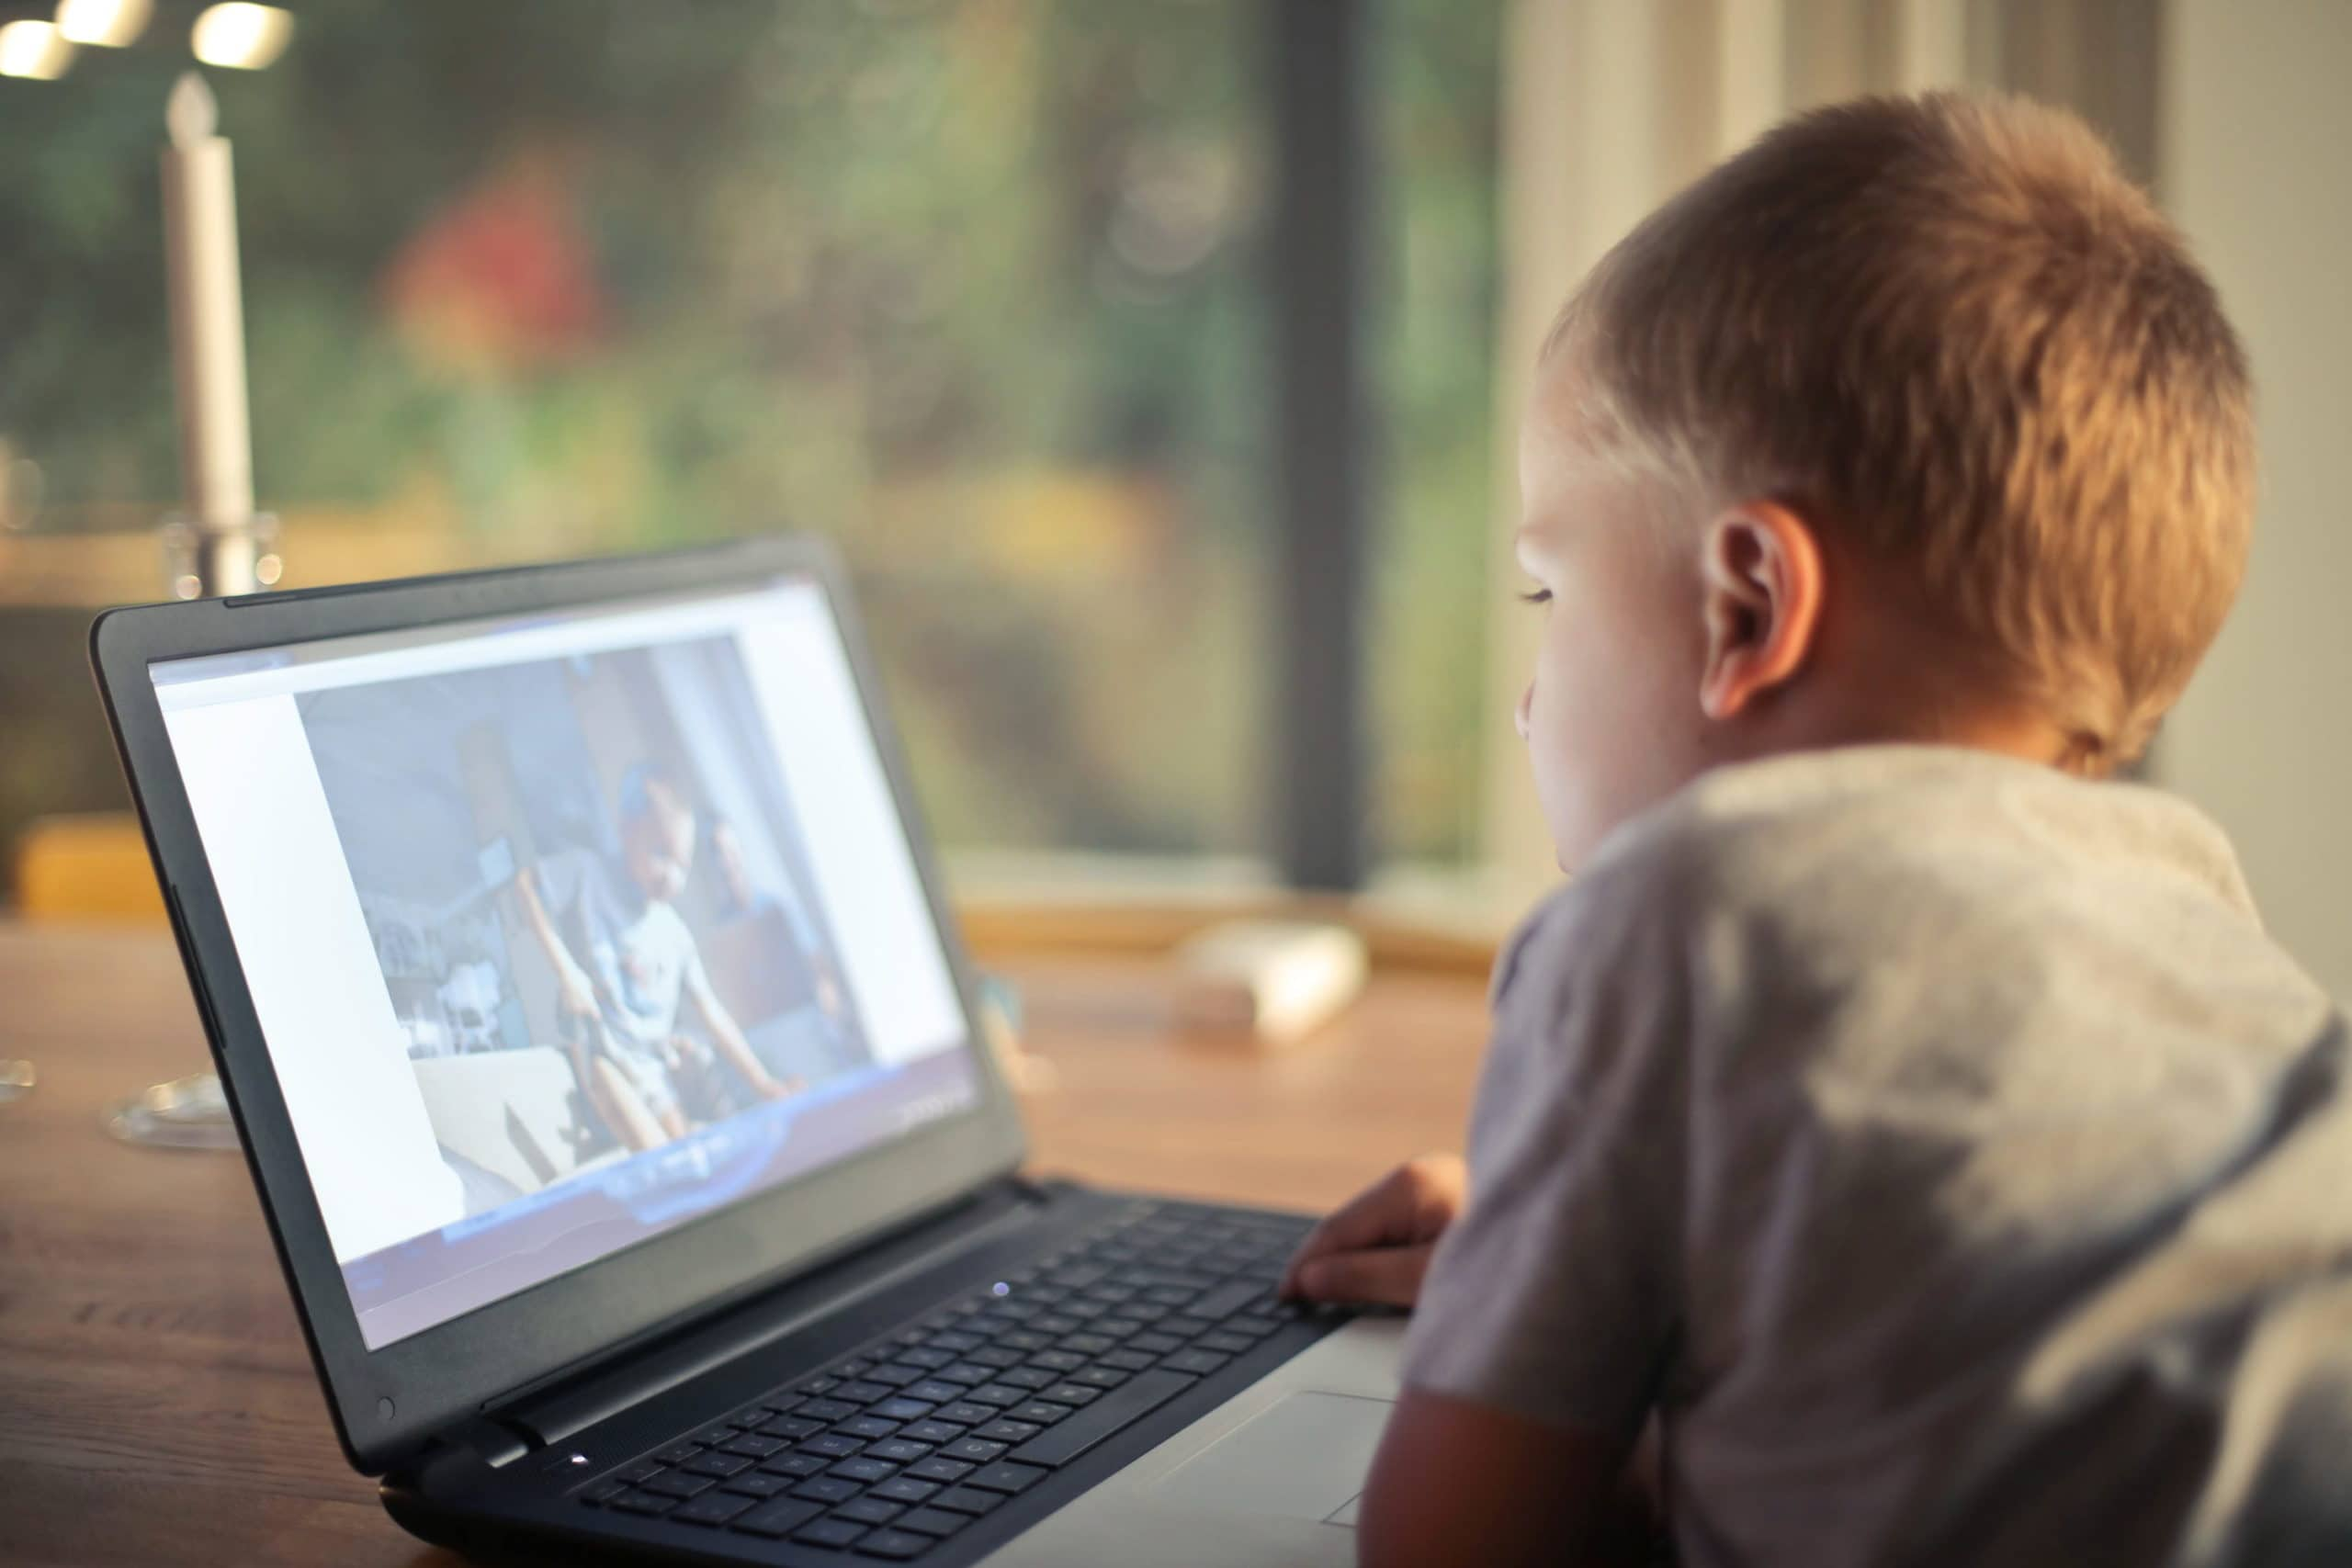 aba-therapy-a-young-boy-watching-a-moving-on-a-laptop